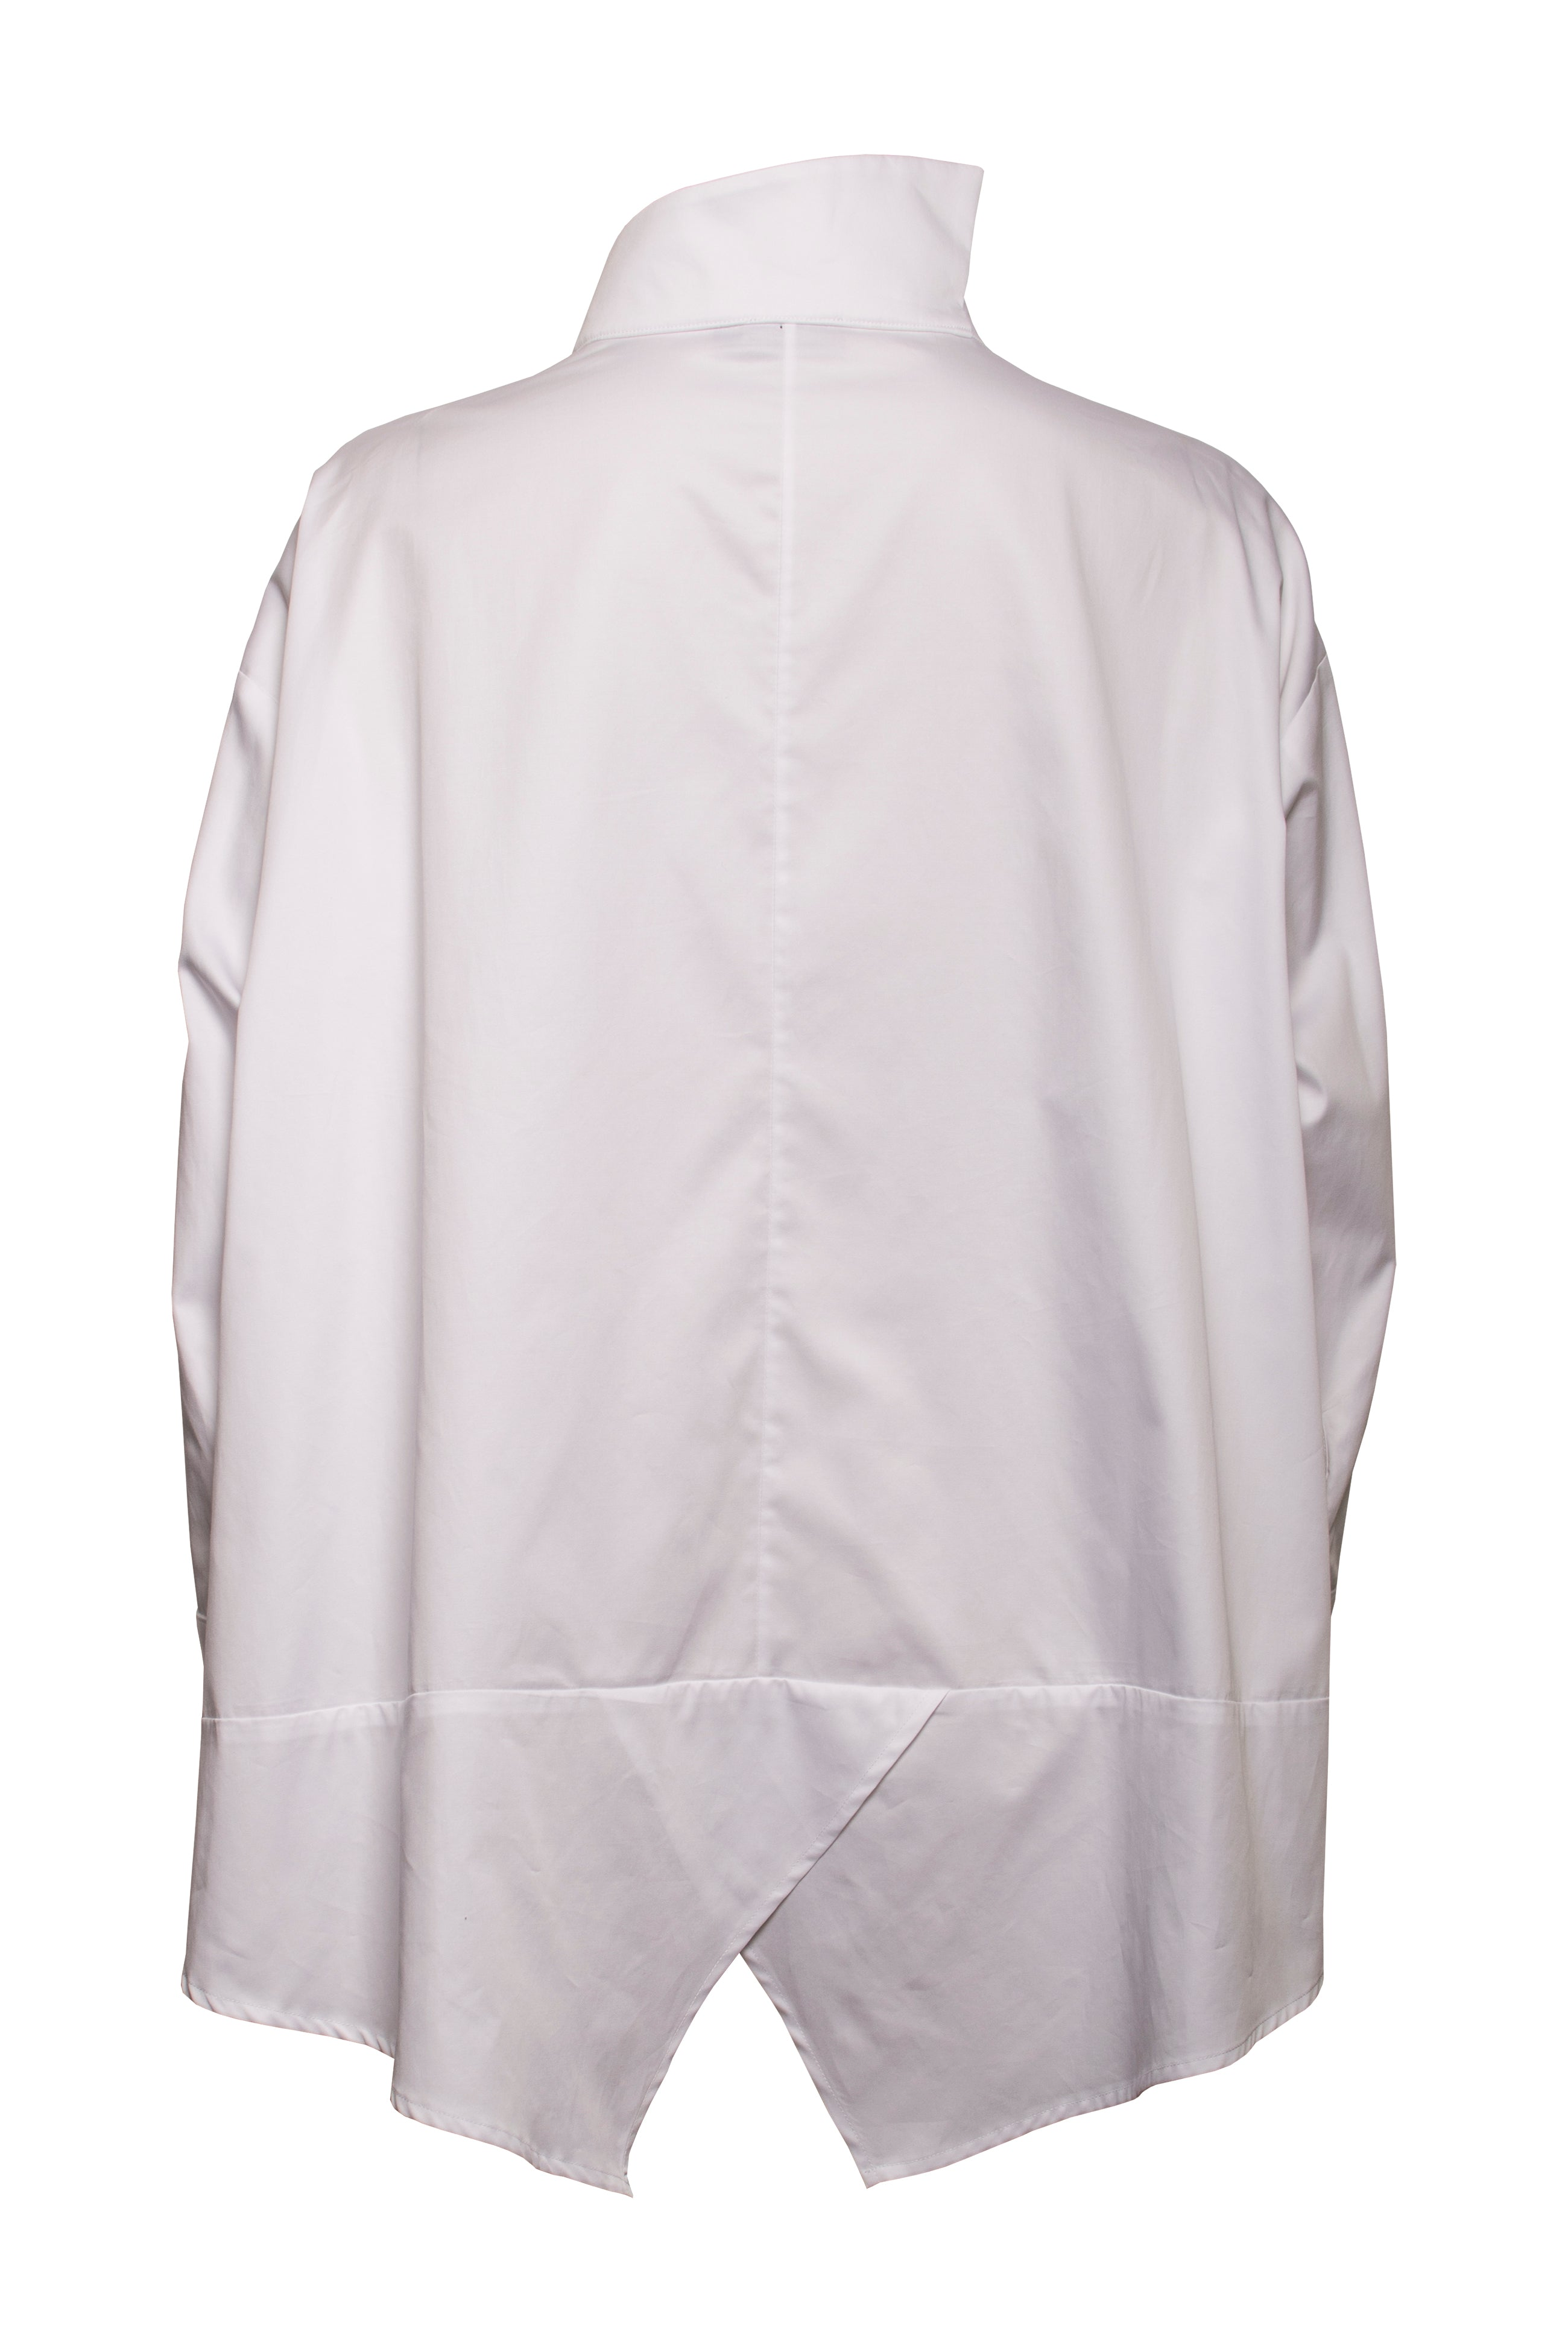 White Cotton Front Pockets Swing Shirt 6210 RE CUT COMING SOON